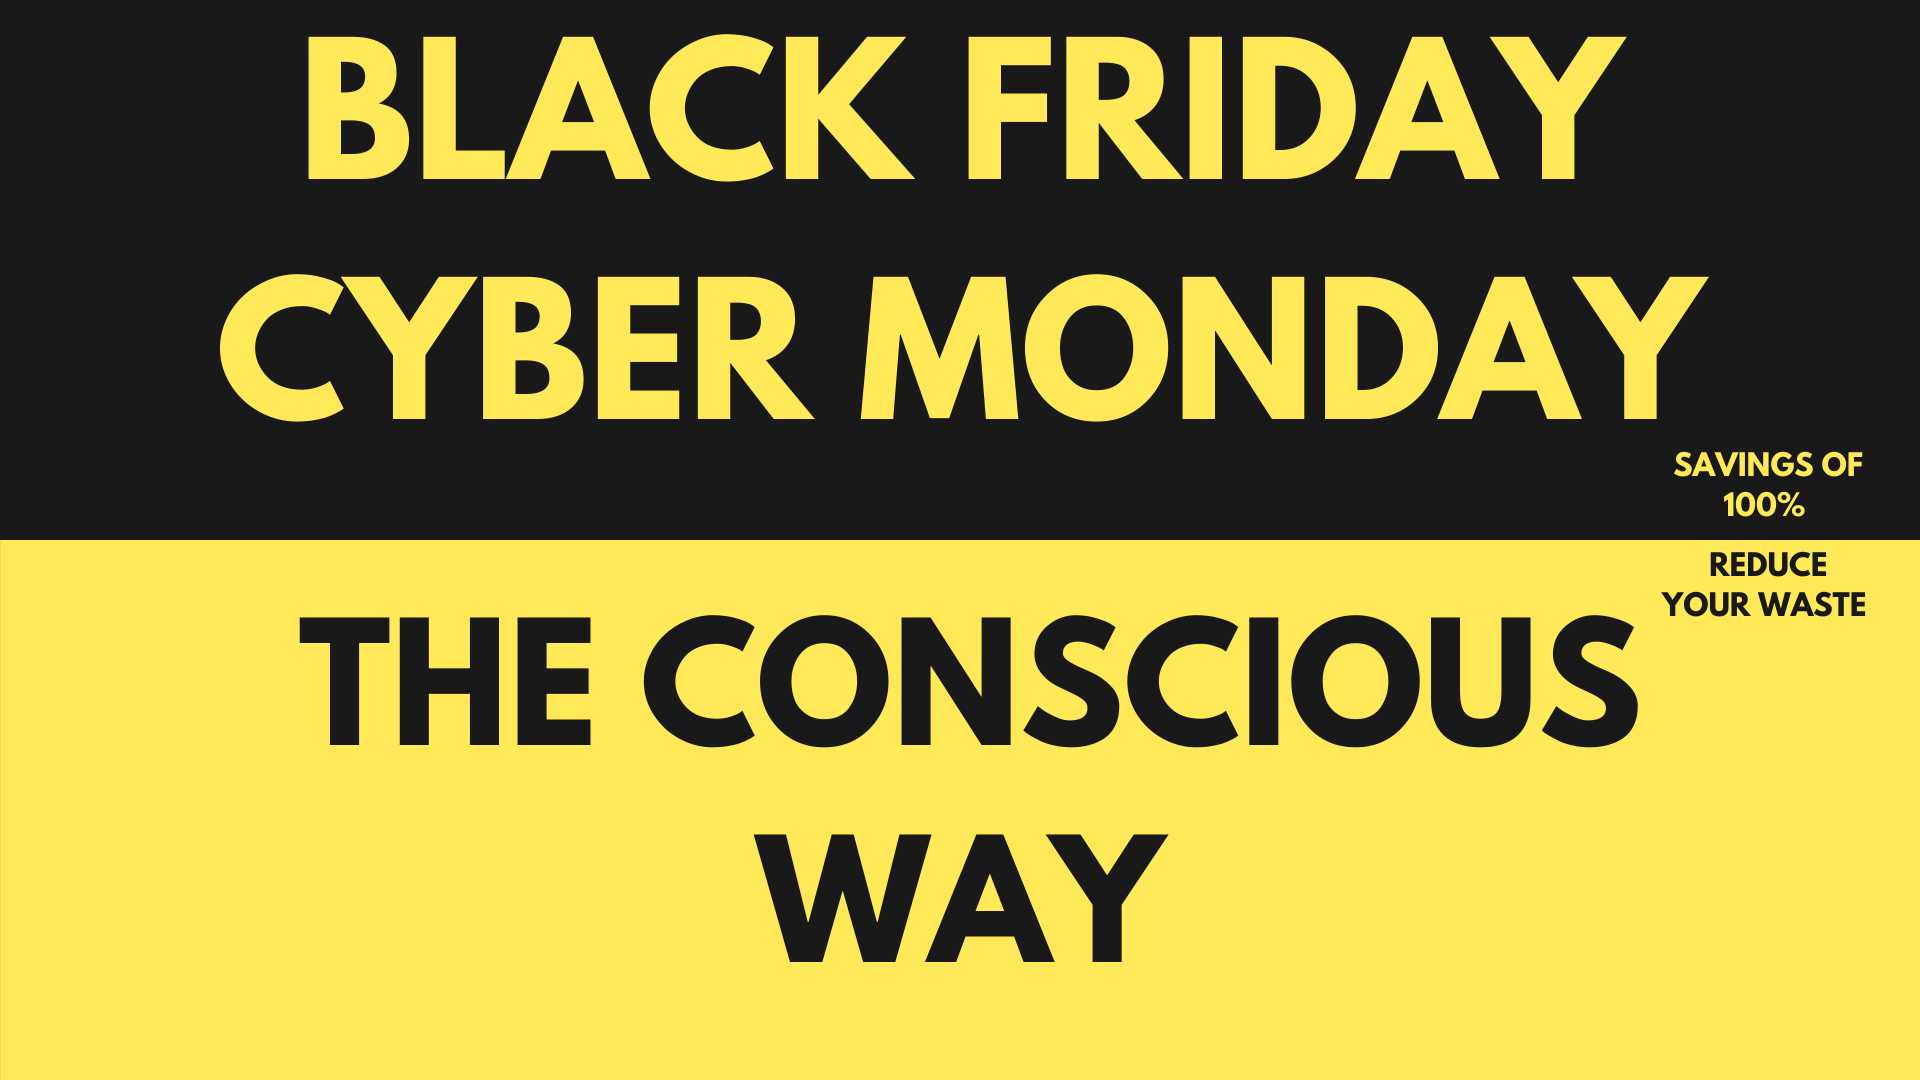 Black Friday & Cyber Monday - The Conscious Way